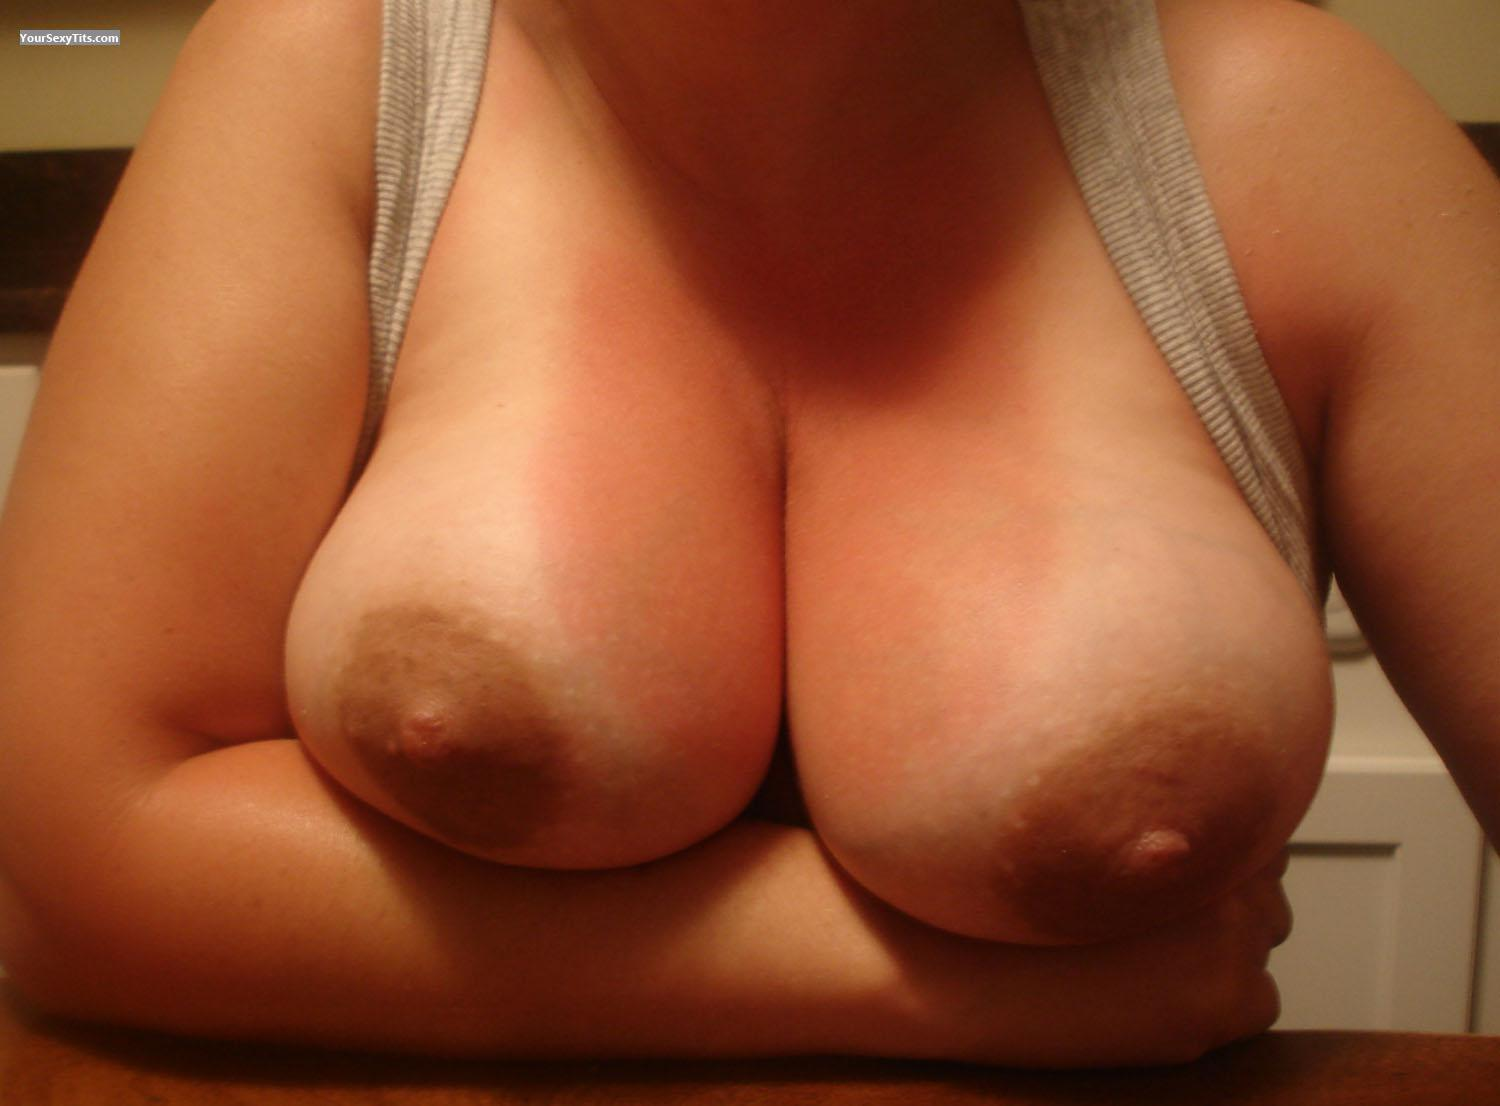 Tit Flash: Wife's Tanlined Medium Tits - Happy from United States